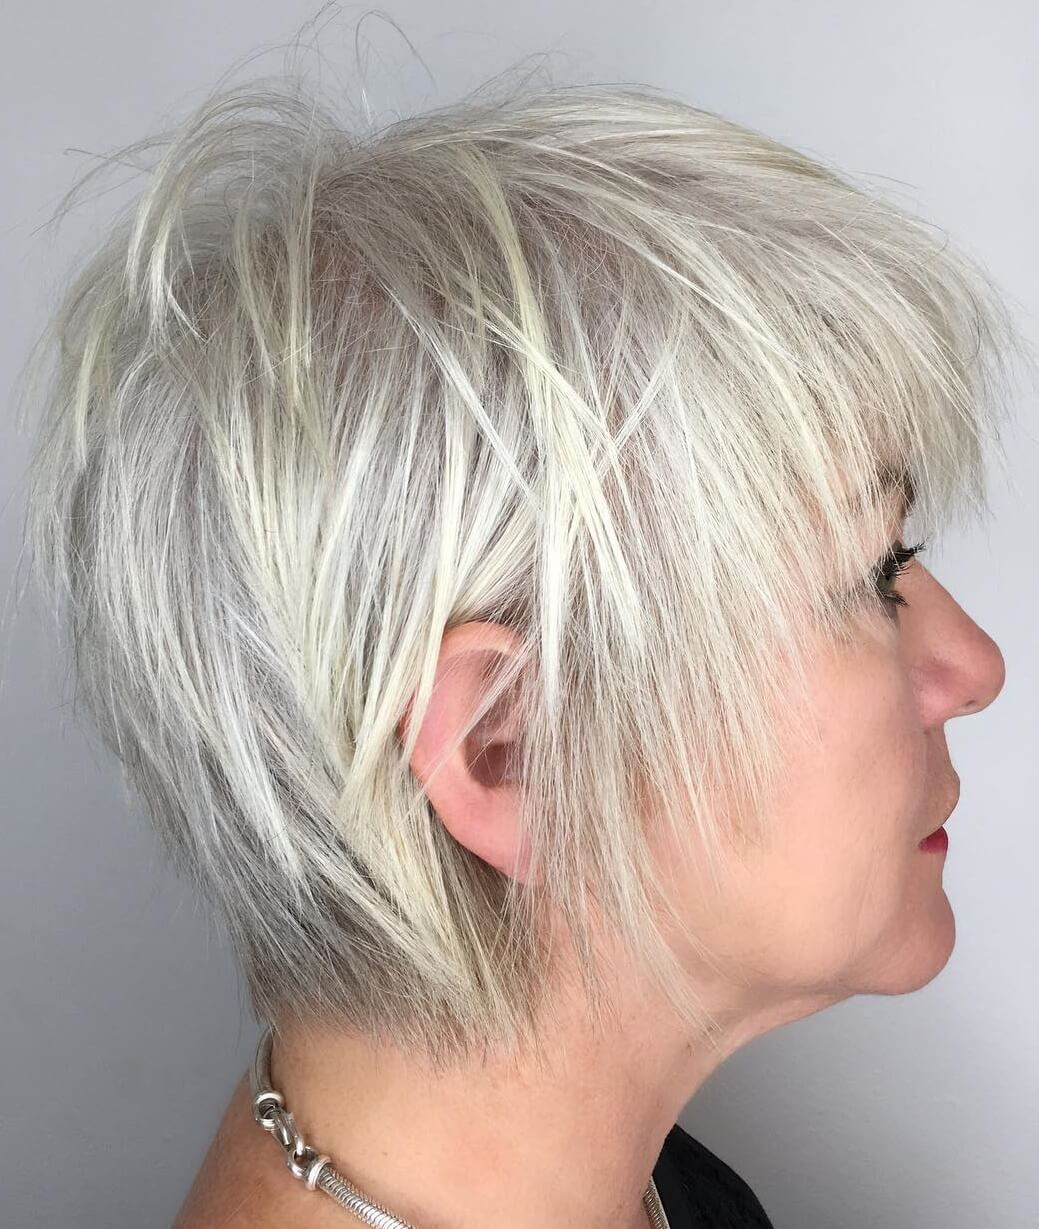 Short Haircuts for Women Over 60 With Fine Hair - 10+